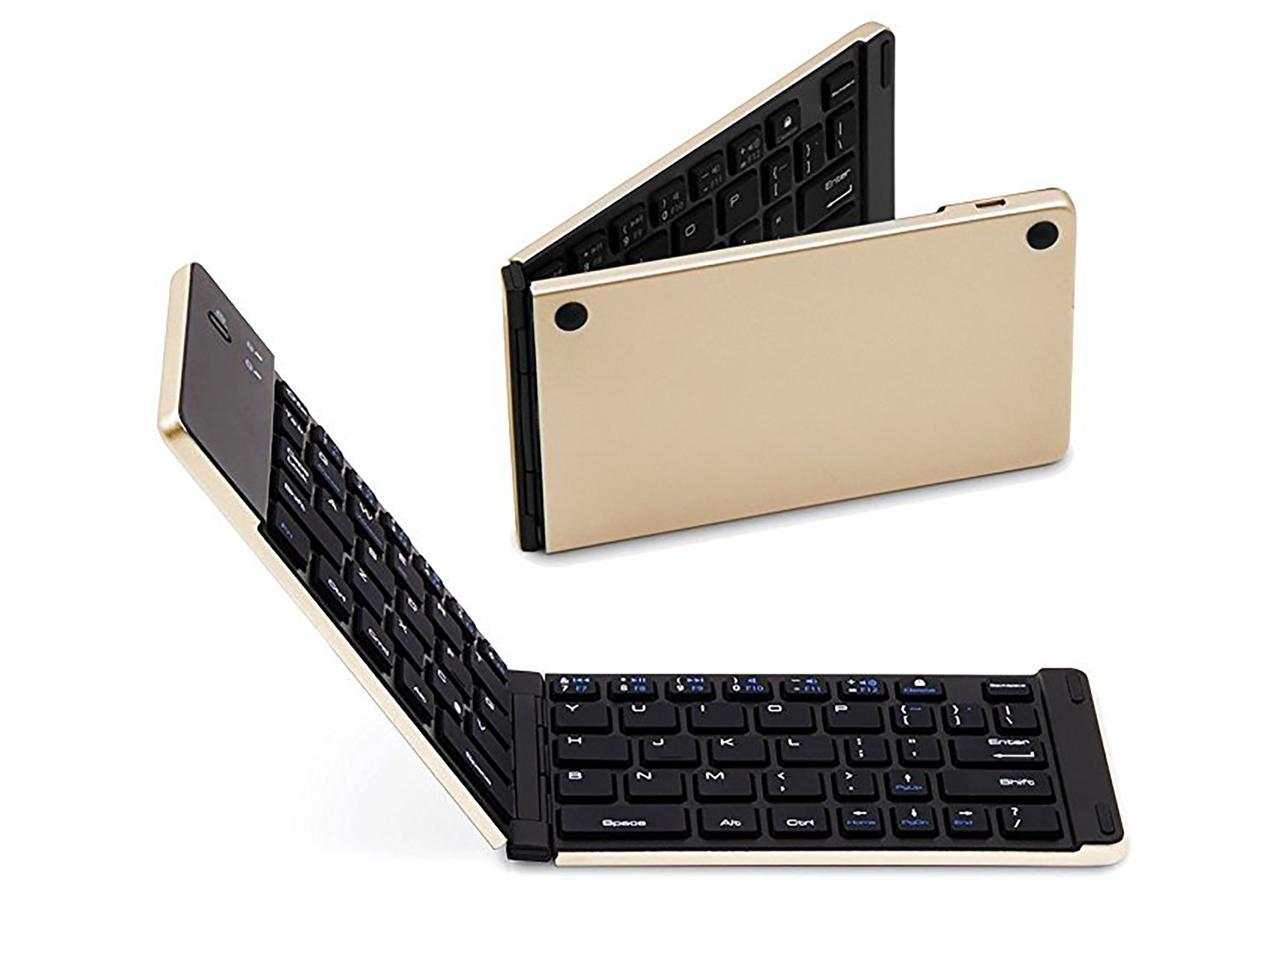 Wireless Keyboard Lightweight and Quiet Keyboard Easy to Use Receiver Portable Keyboard Triple Pad Longer Battery Life Suitable for Laptops